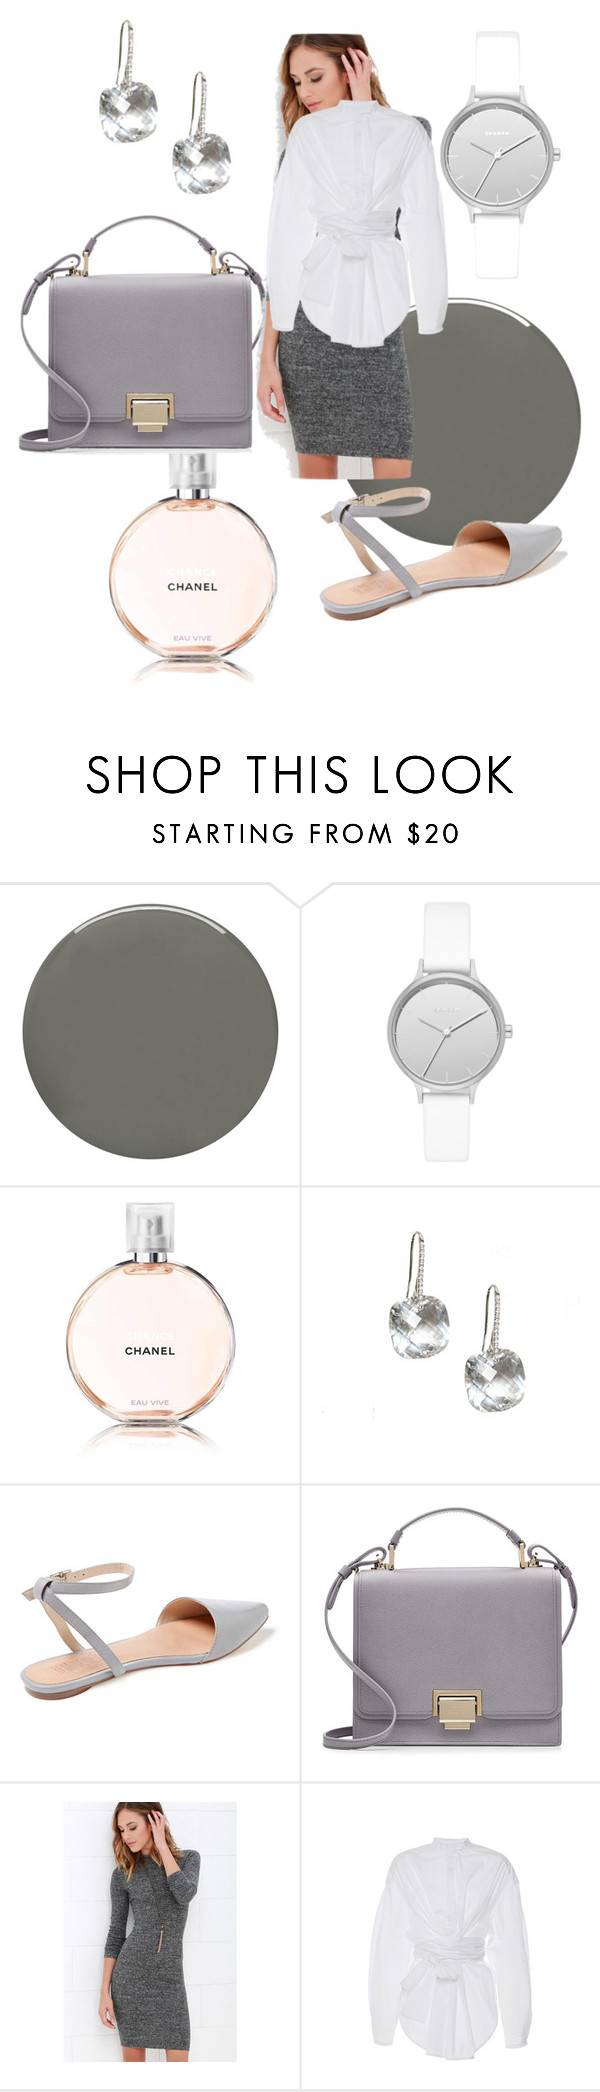 """""""April"""" by nicky-jane-neary on Polyvore featuring Deborah Lippmann, Skagen, Chanel, Smythson, LULUS and E L L E R Y"""